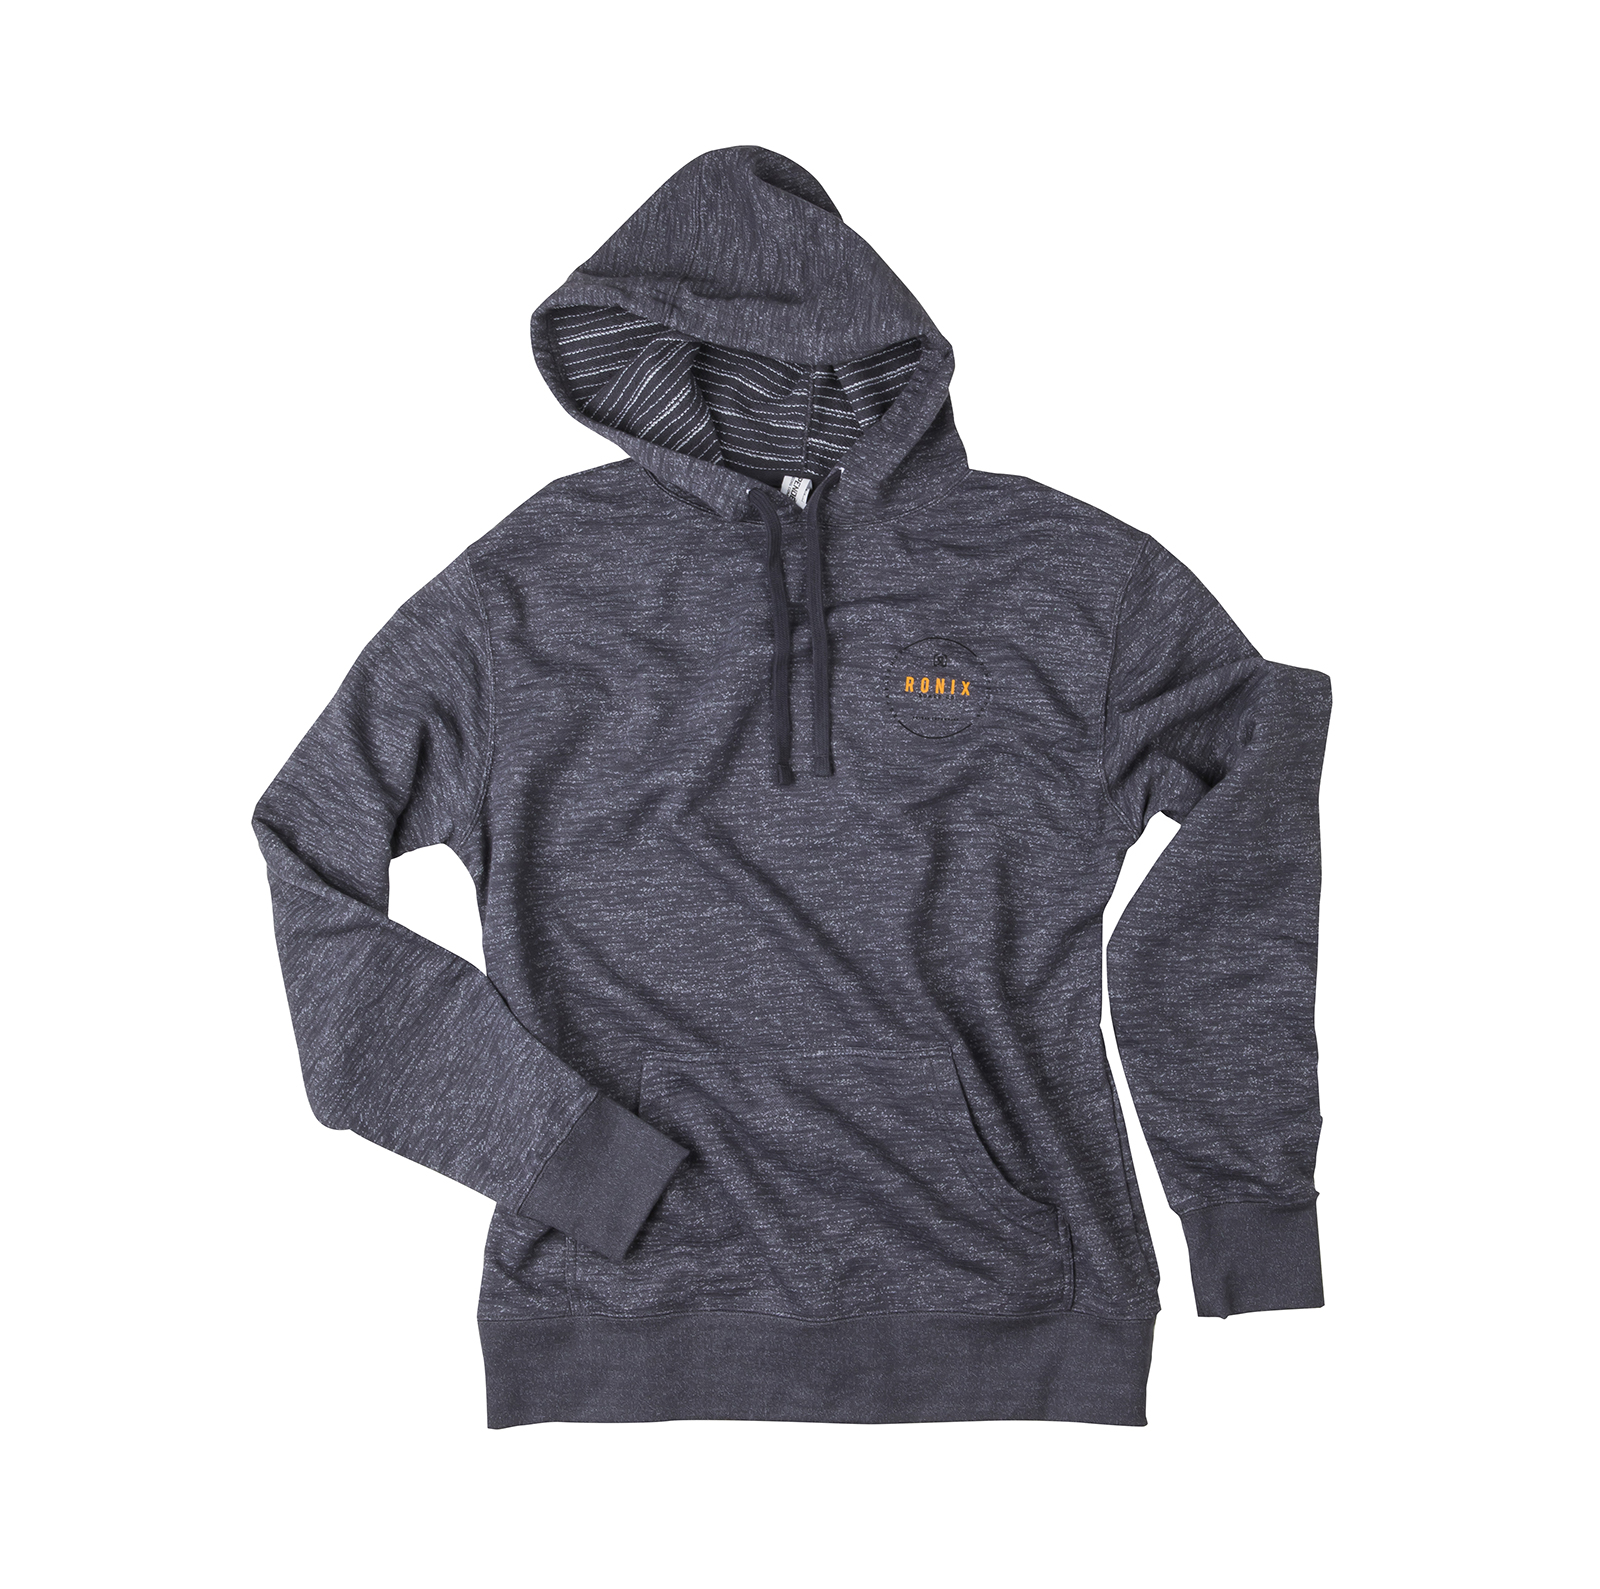 FUTURE THROWBACK HOODIE RONIX 2018